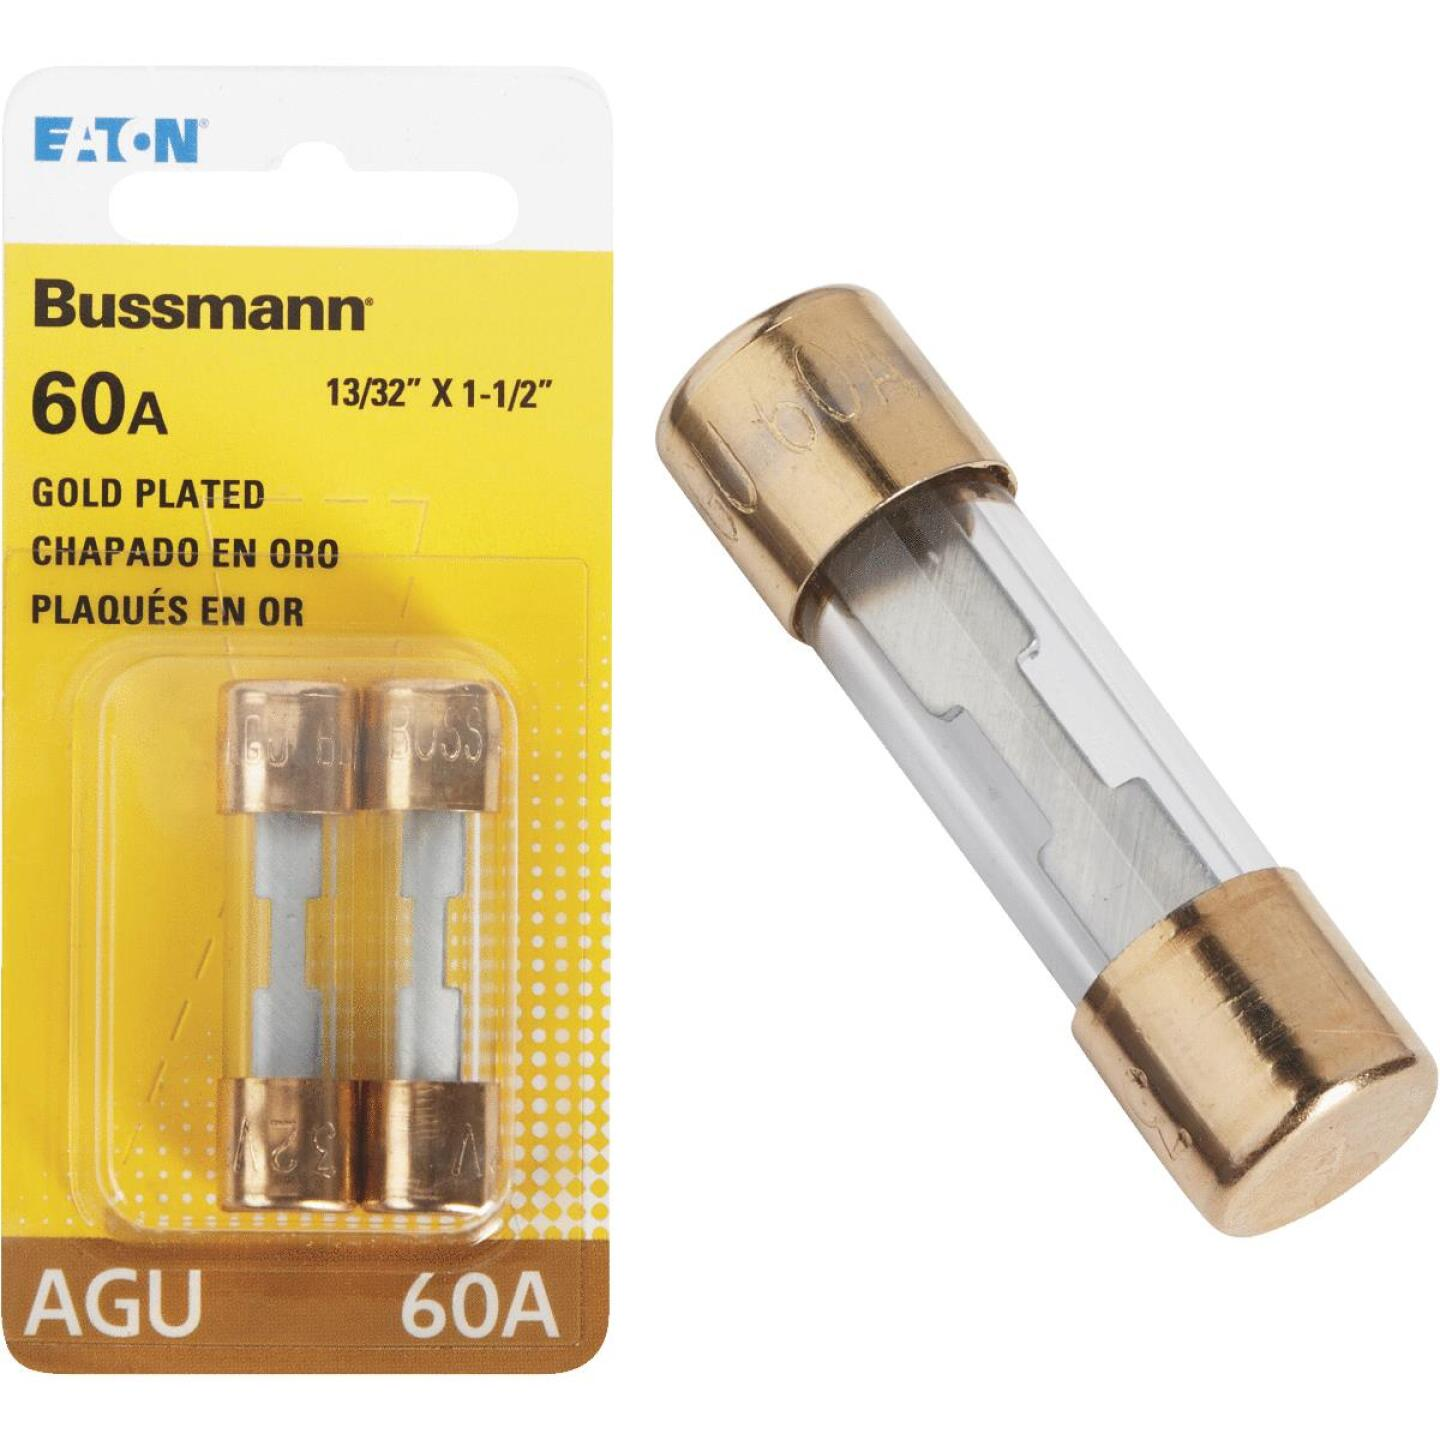 Bussmann 60-Amp AGU Glass Tube Automotive Fuse with Gold-Plated End Caps (2-Pack) Image 1